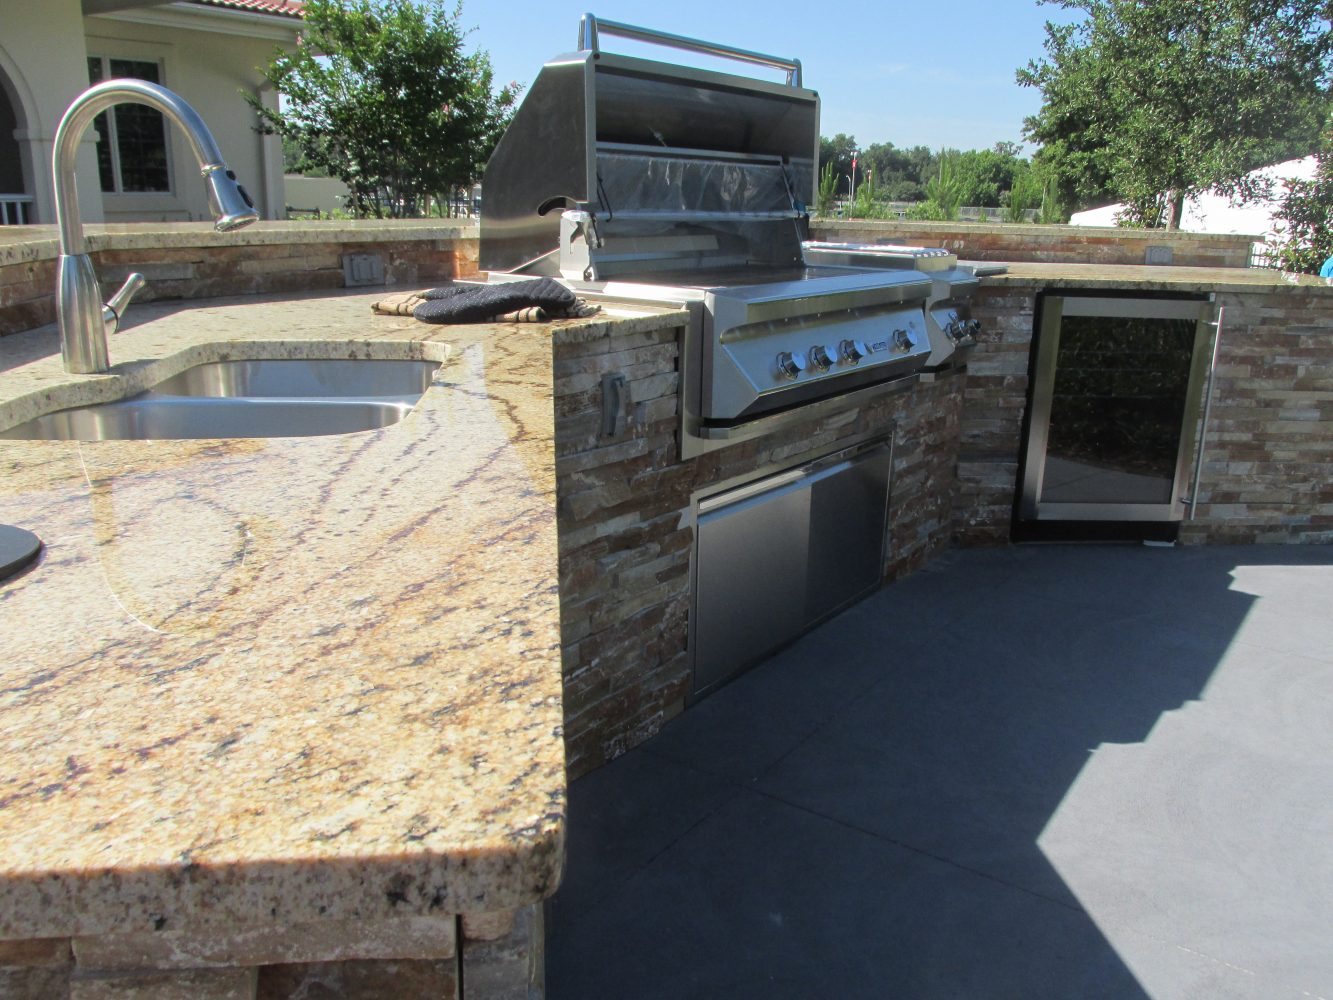 Families can use this outdoor kitchen to host summer cook outs and celebrations. This is the first Fisher House to come equipped with an outdoor grilling patio.